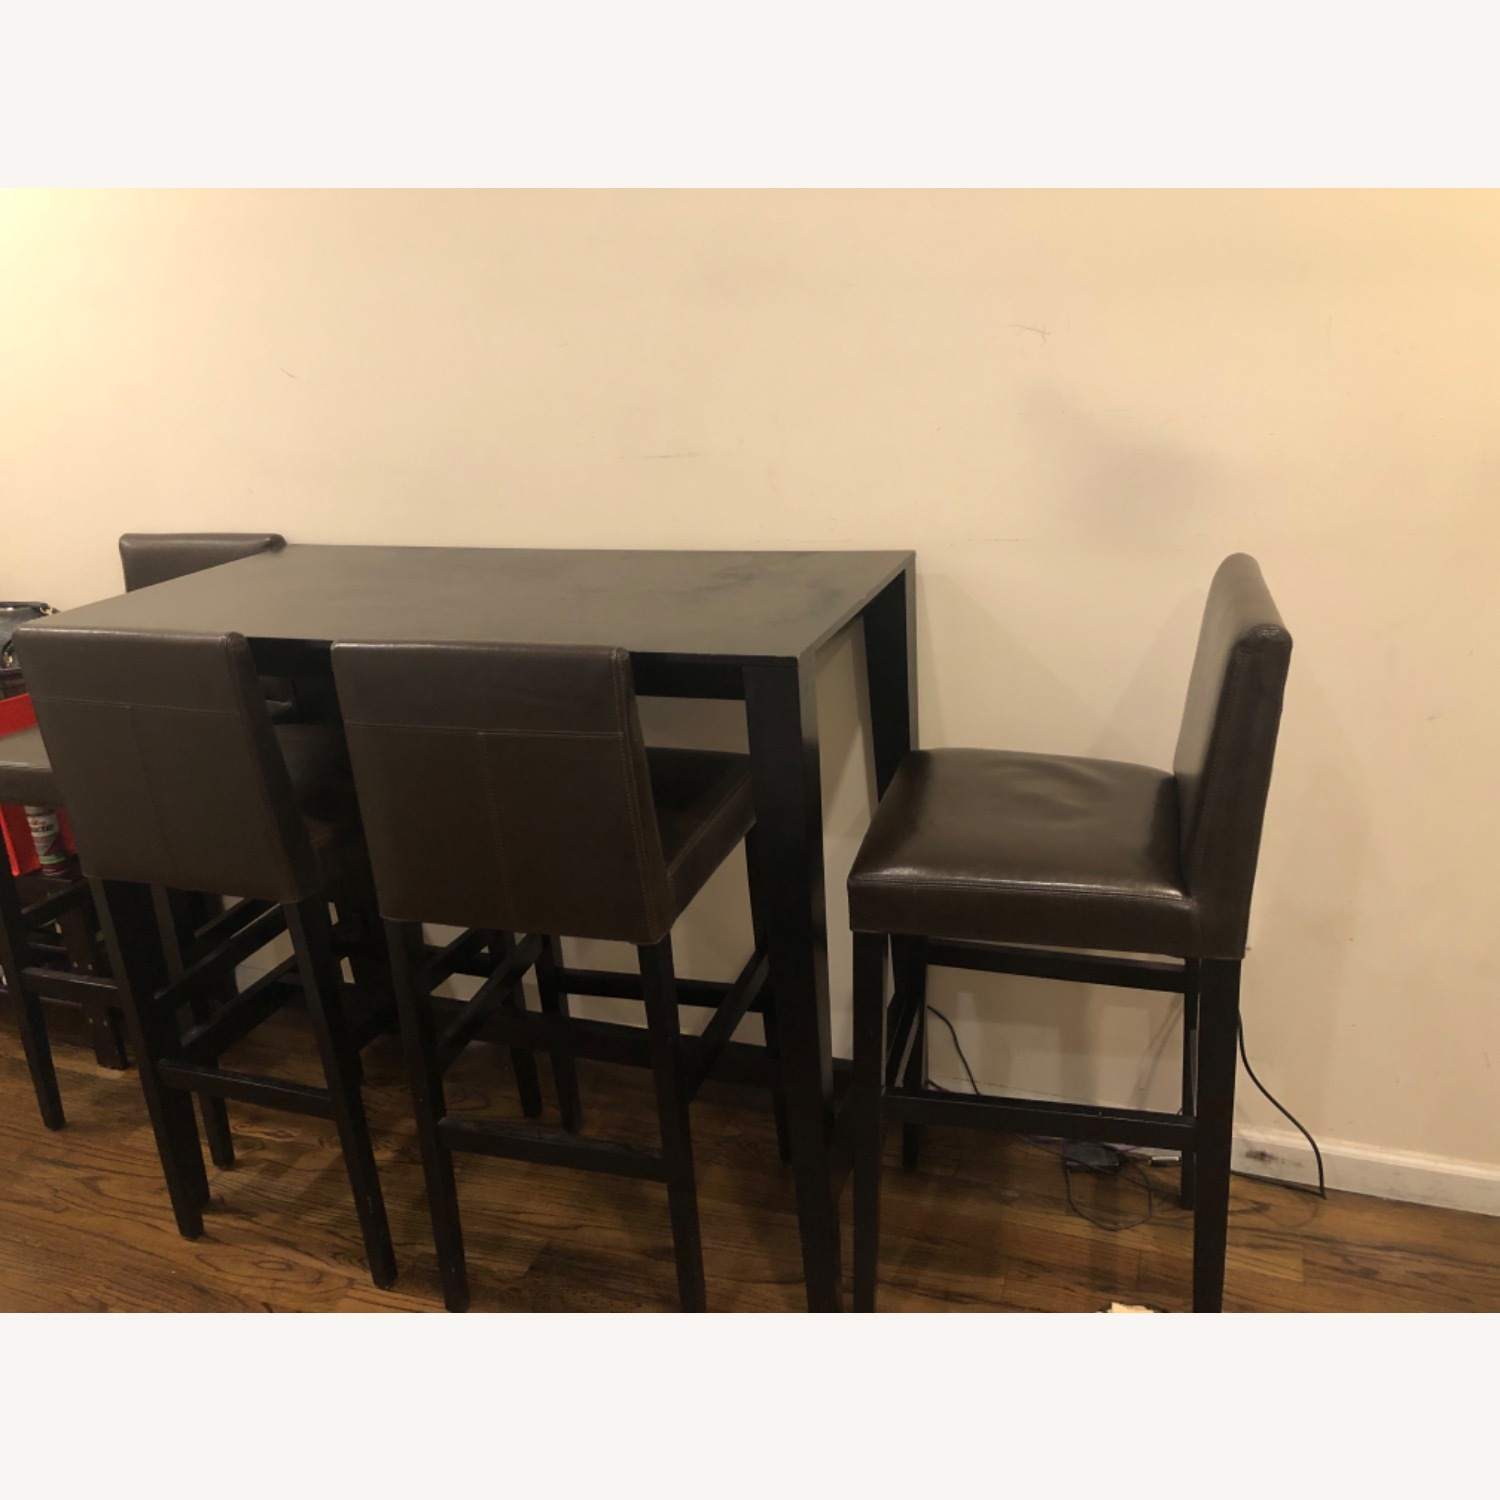 Crate and Barrel Brown Dining Table and 4 Chairs - image-2